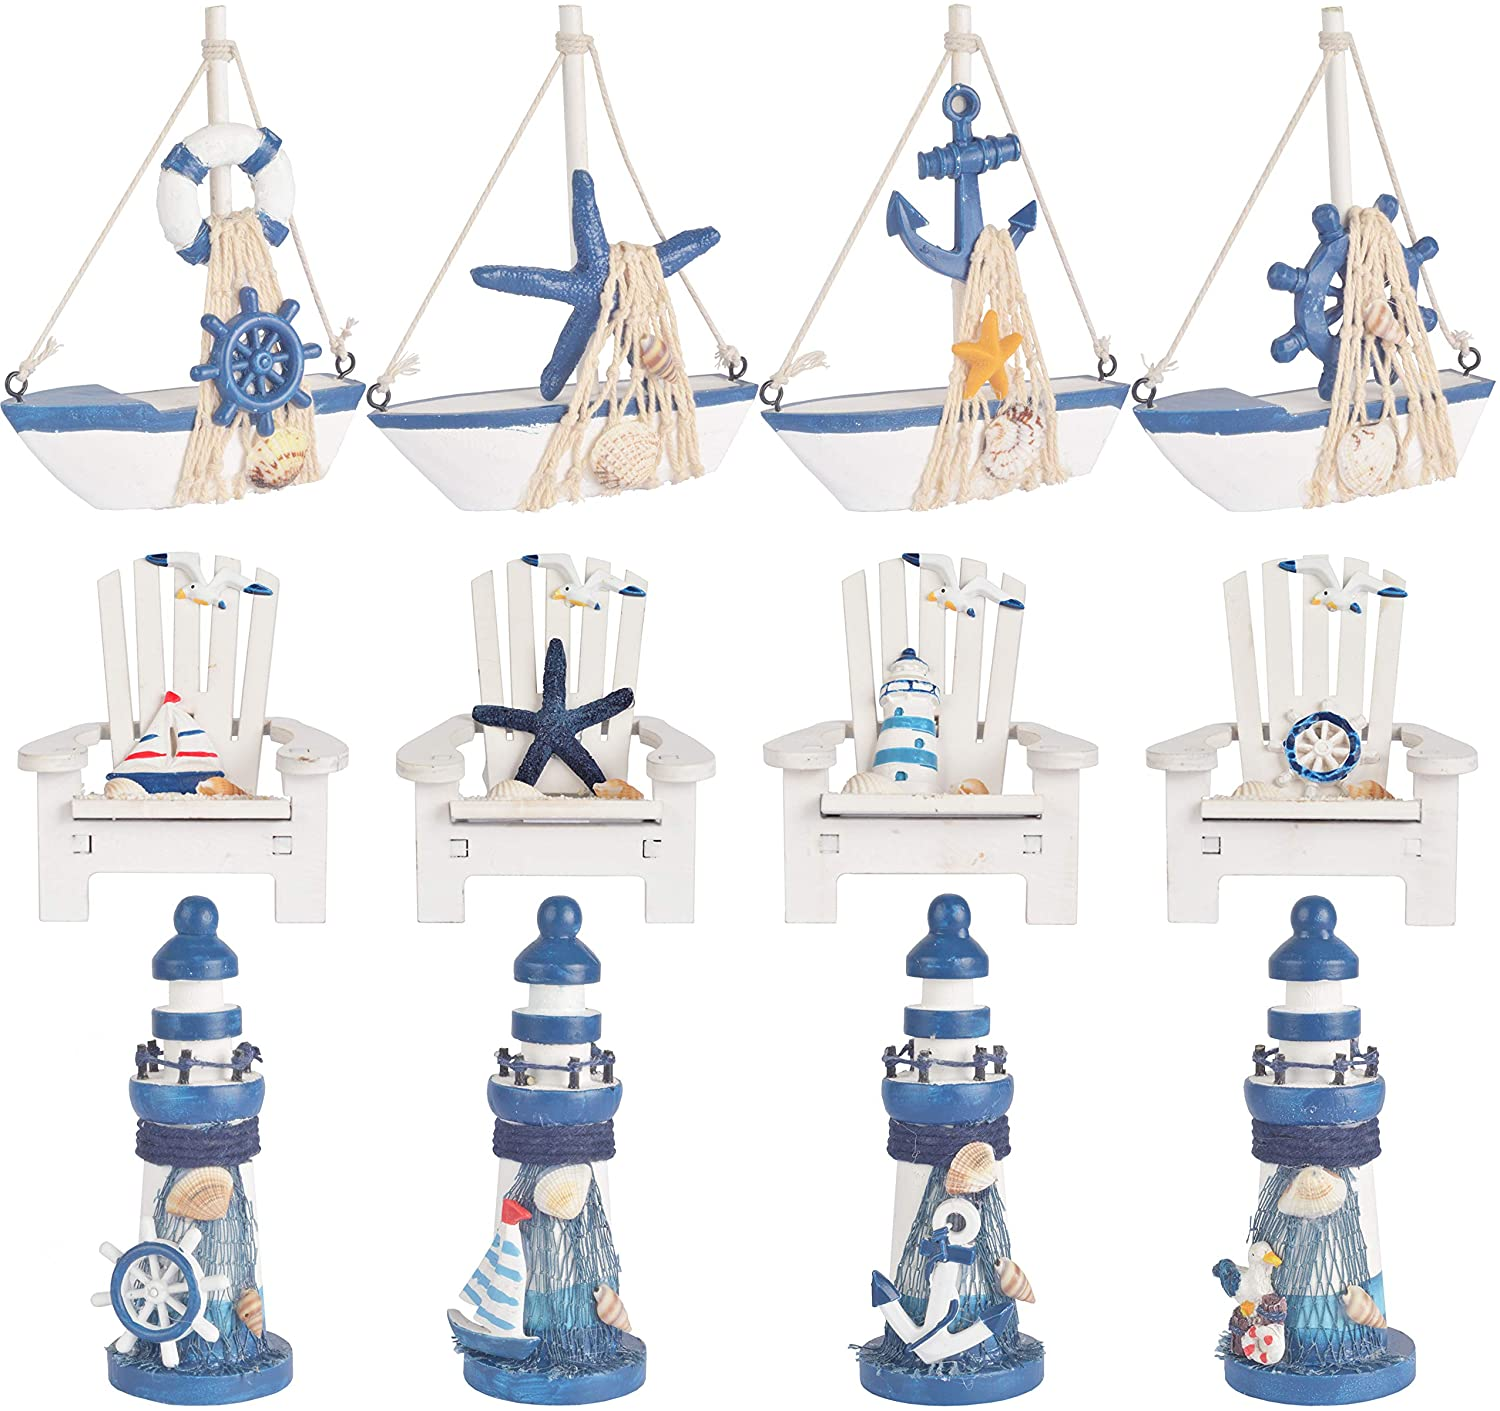 Wooden Mini Lighthouse, Mini Beach Chair Ornaments and Mini Sailboat Model Decoration, Wooden Chair Ornament and Mini Sailboat Model Decoration, Set of 12 Different Design Wooden Decorative Sailboats